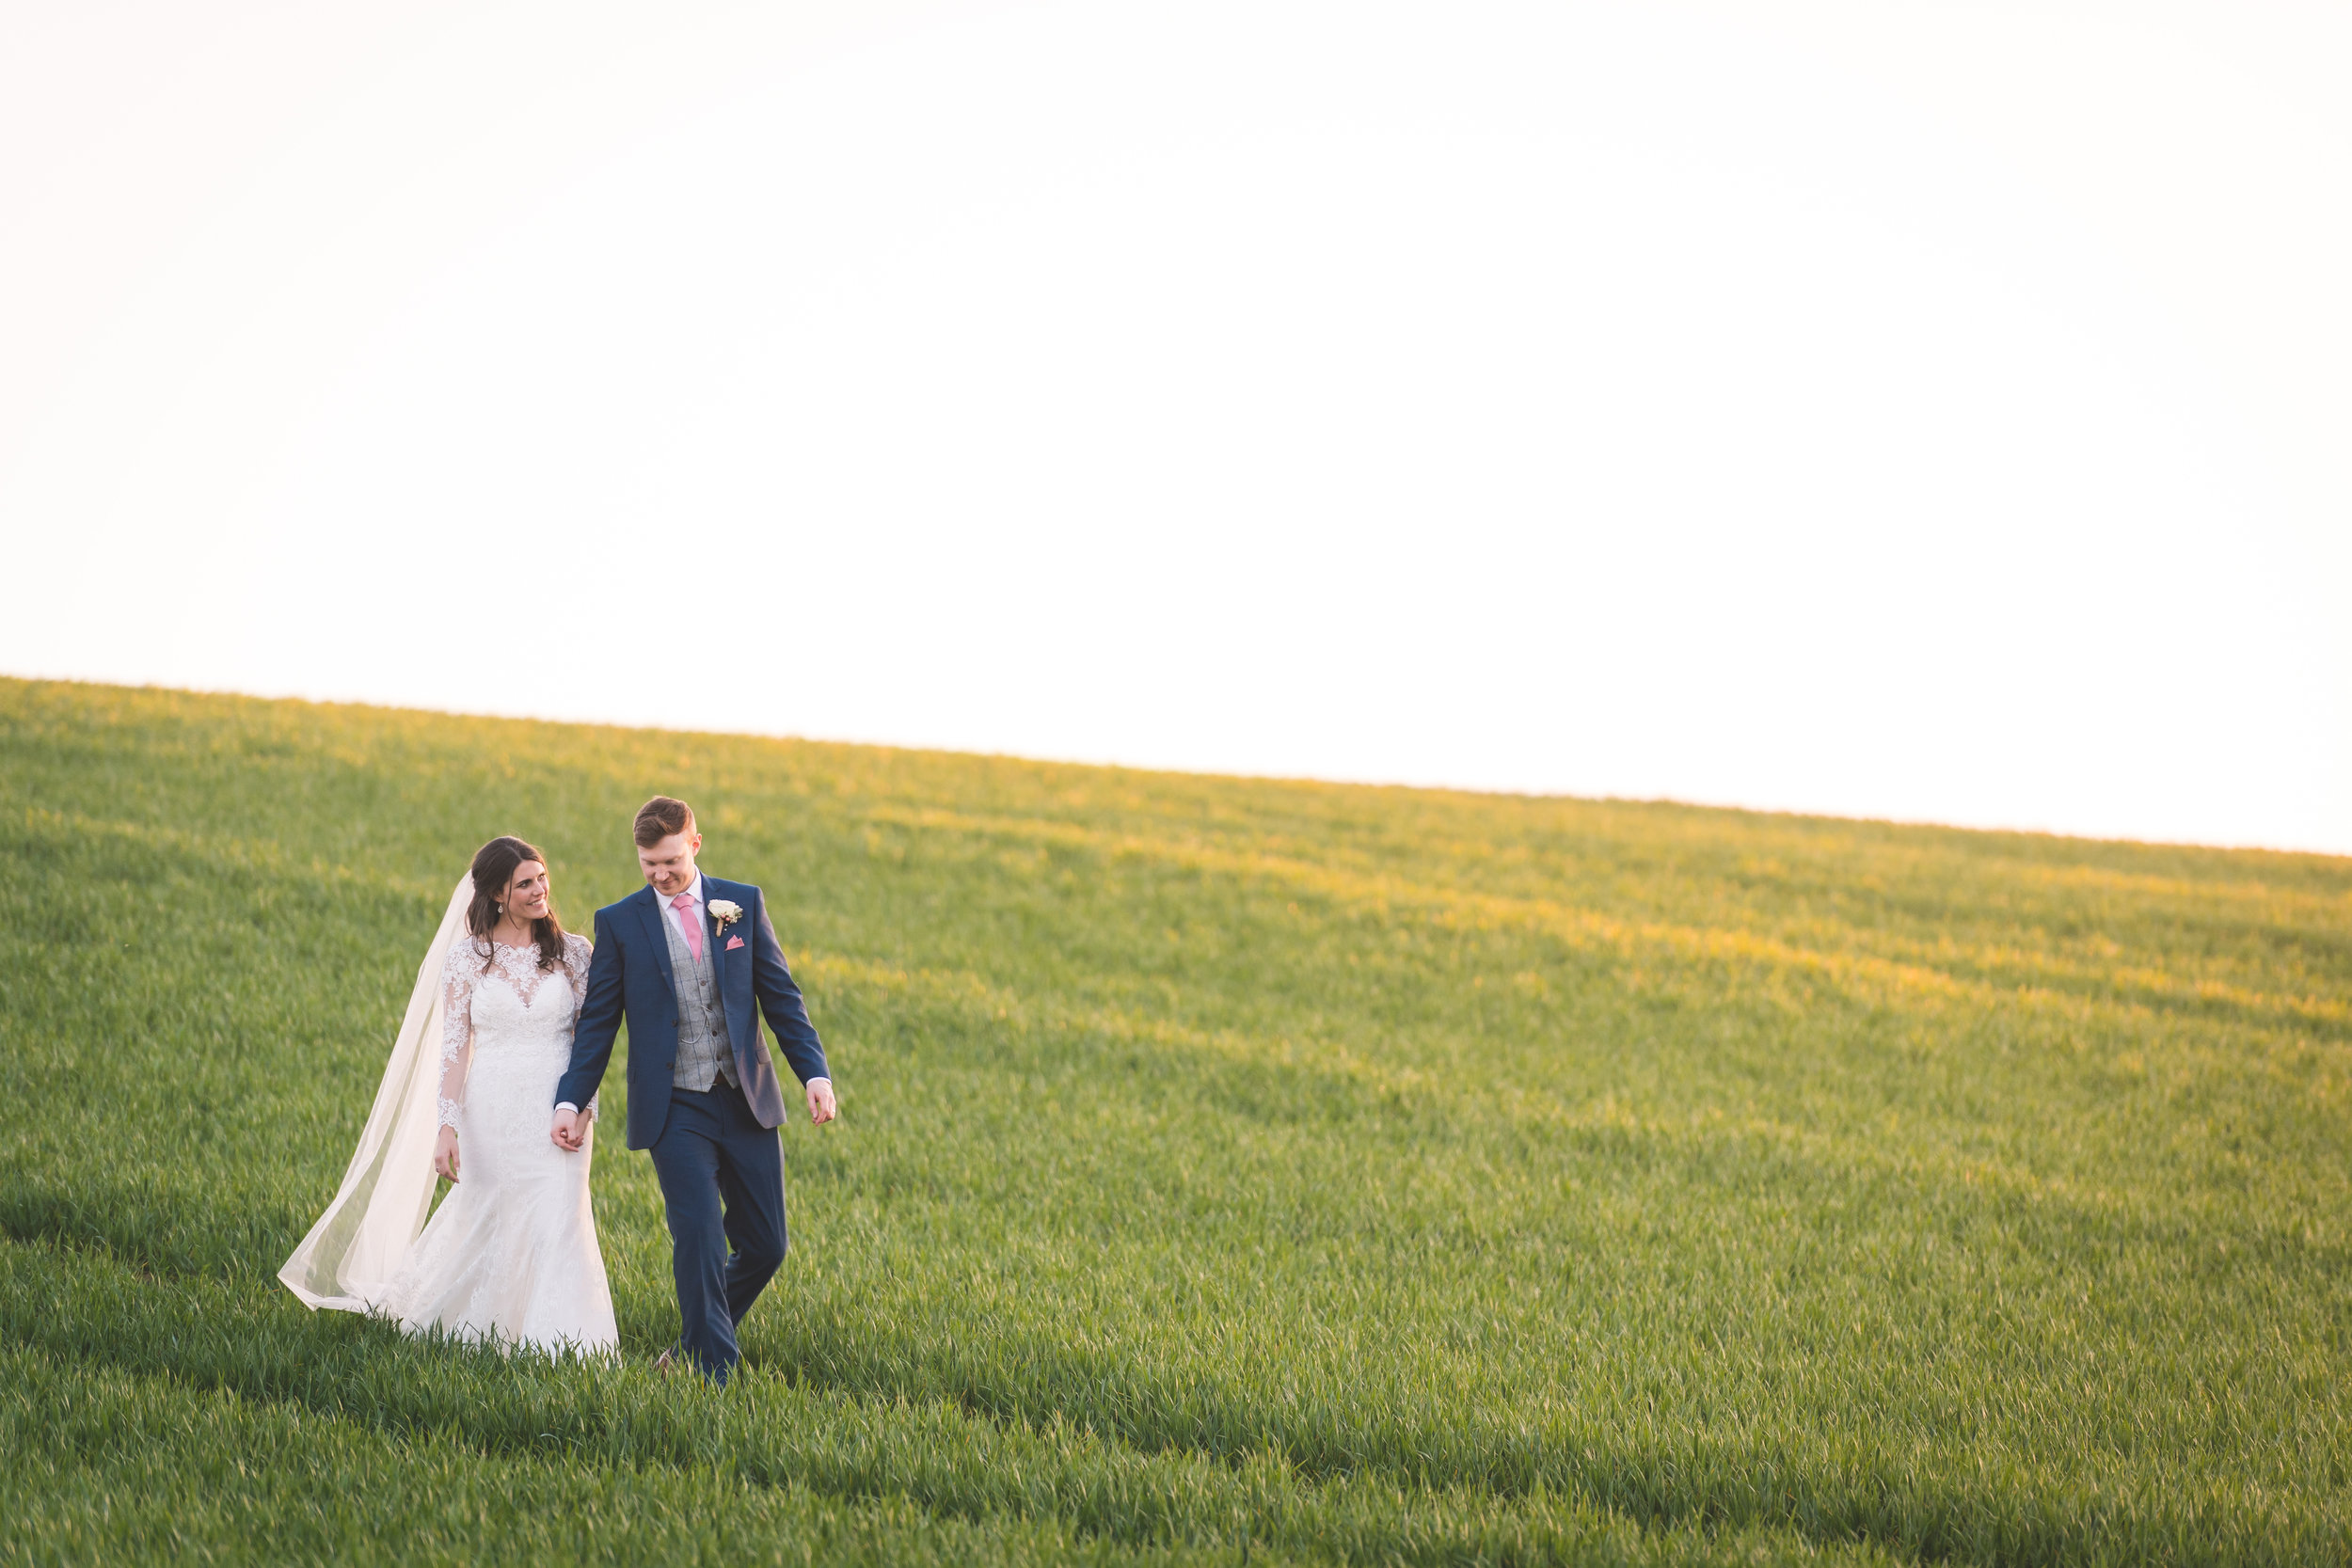 The Yorkshire Wedding Barn | Yorkshire Wedding Photographer